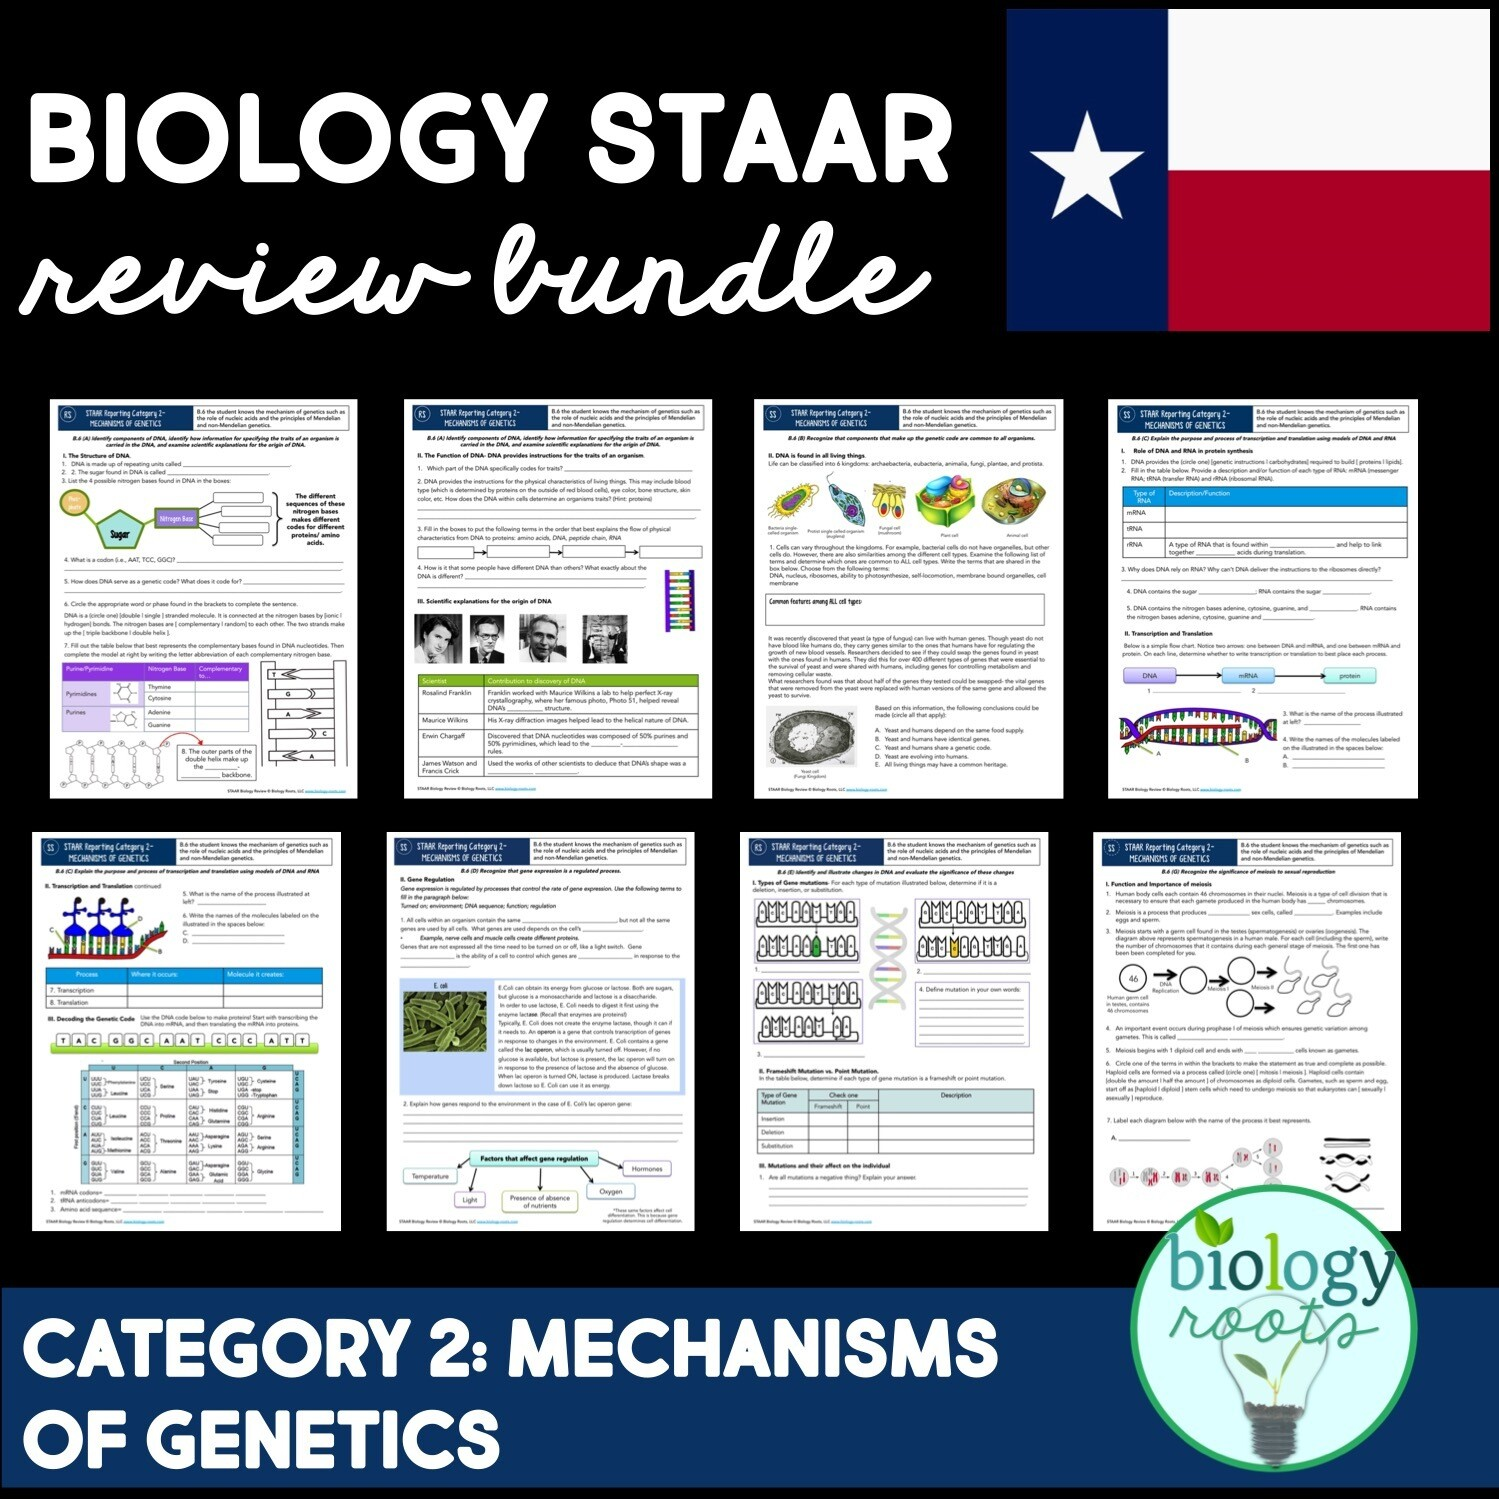 STAAR Biology Review Reporting Category 2